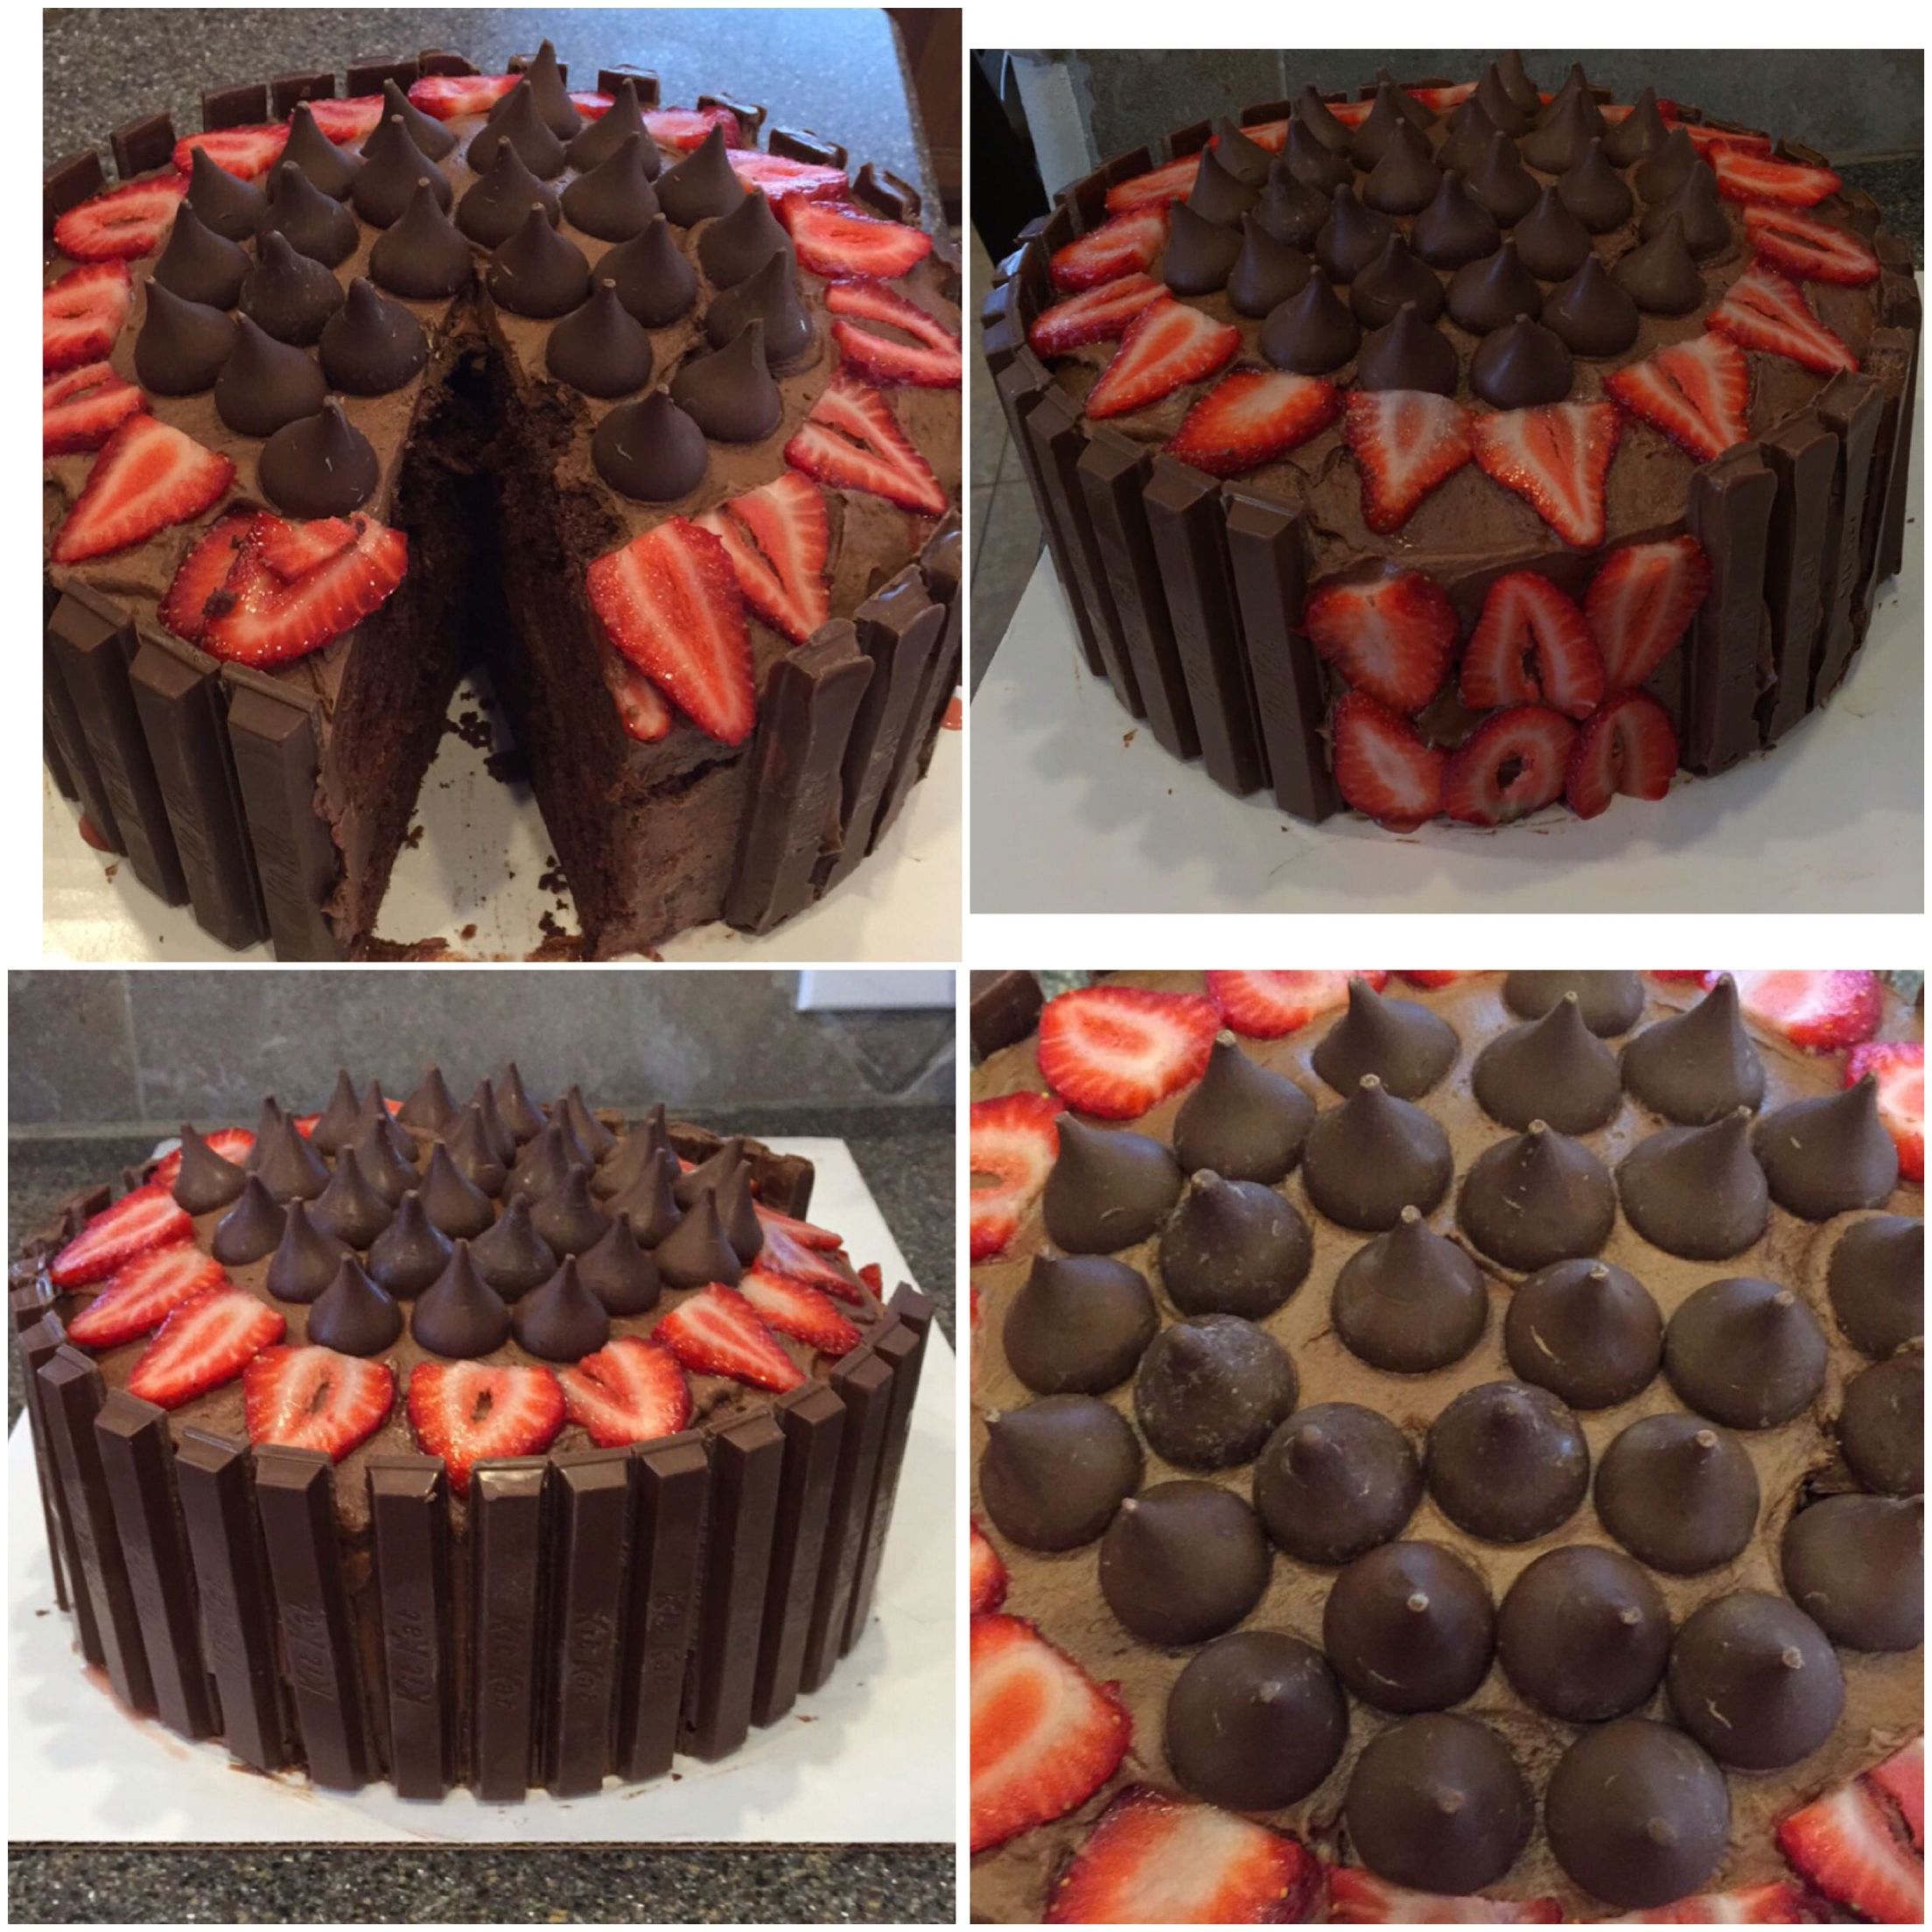 Chocolate Cake with Kit Kats Hershey's Kisses and Strawberries ...